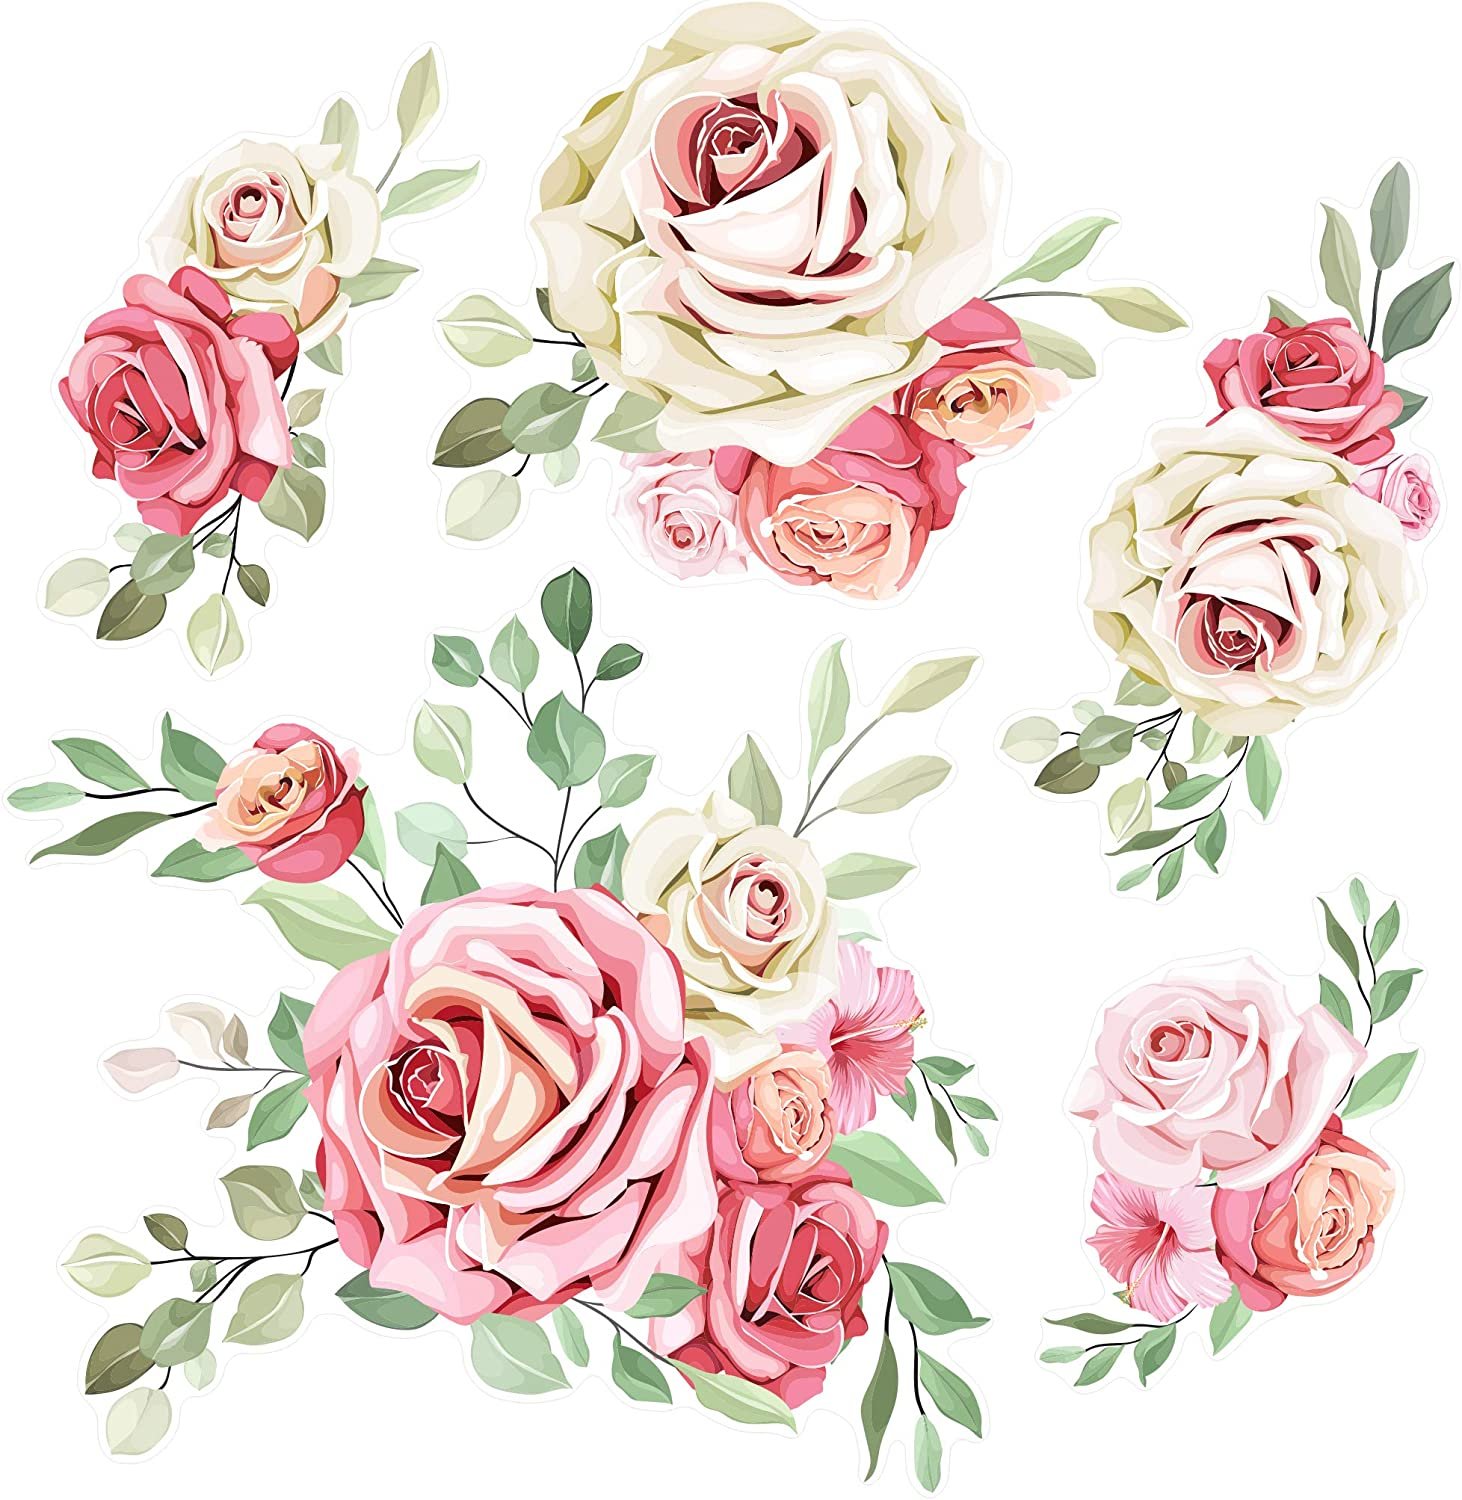 SylkyClover Flower Wall Decals - Peel and Stick Decals (28.5 x 16.5 in), Floral Wall Decals, Flower Decals for Wall, Rose Stickers Decals, Flower Wall Stickers, Floral Wall Decor Nursery (Pink)